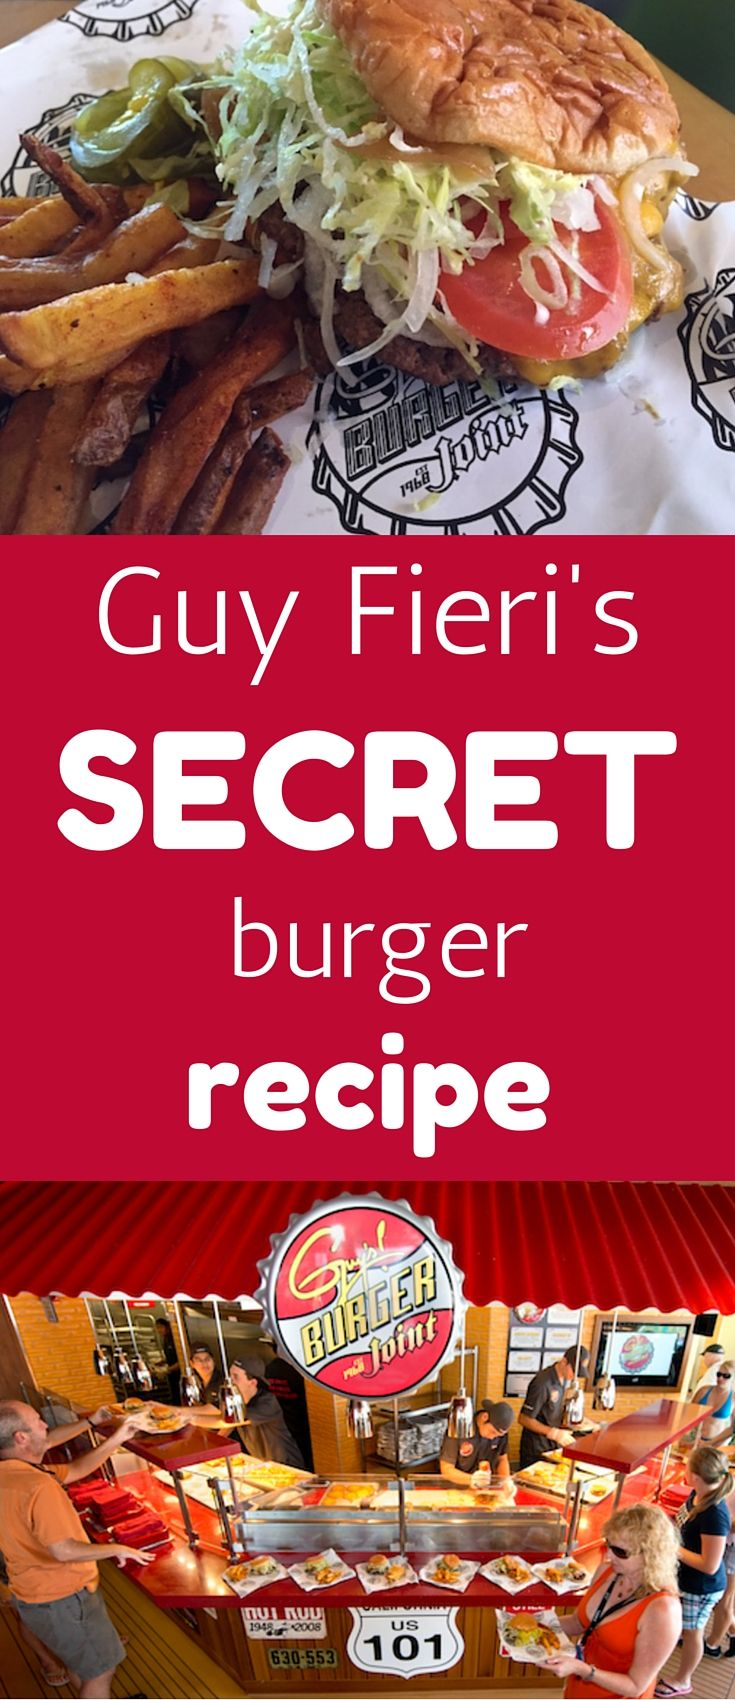 Carnival Reveals Guy's Secret Burger Recipe